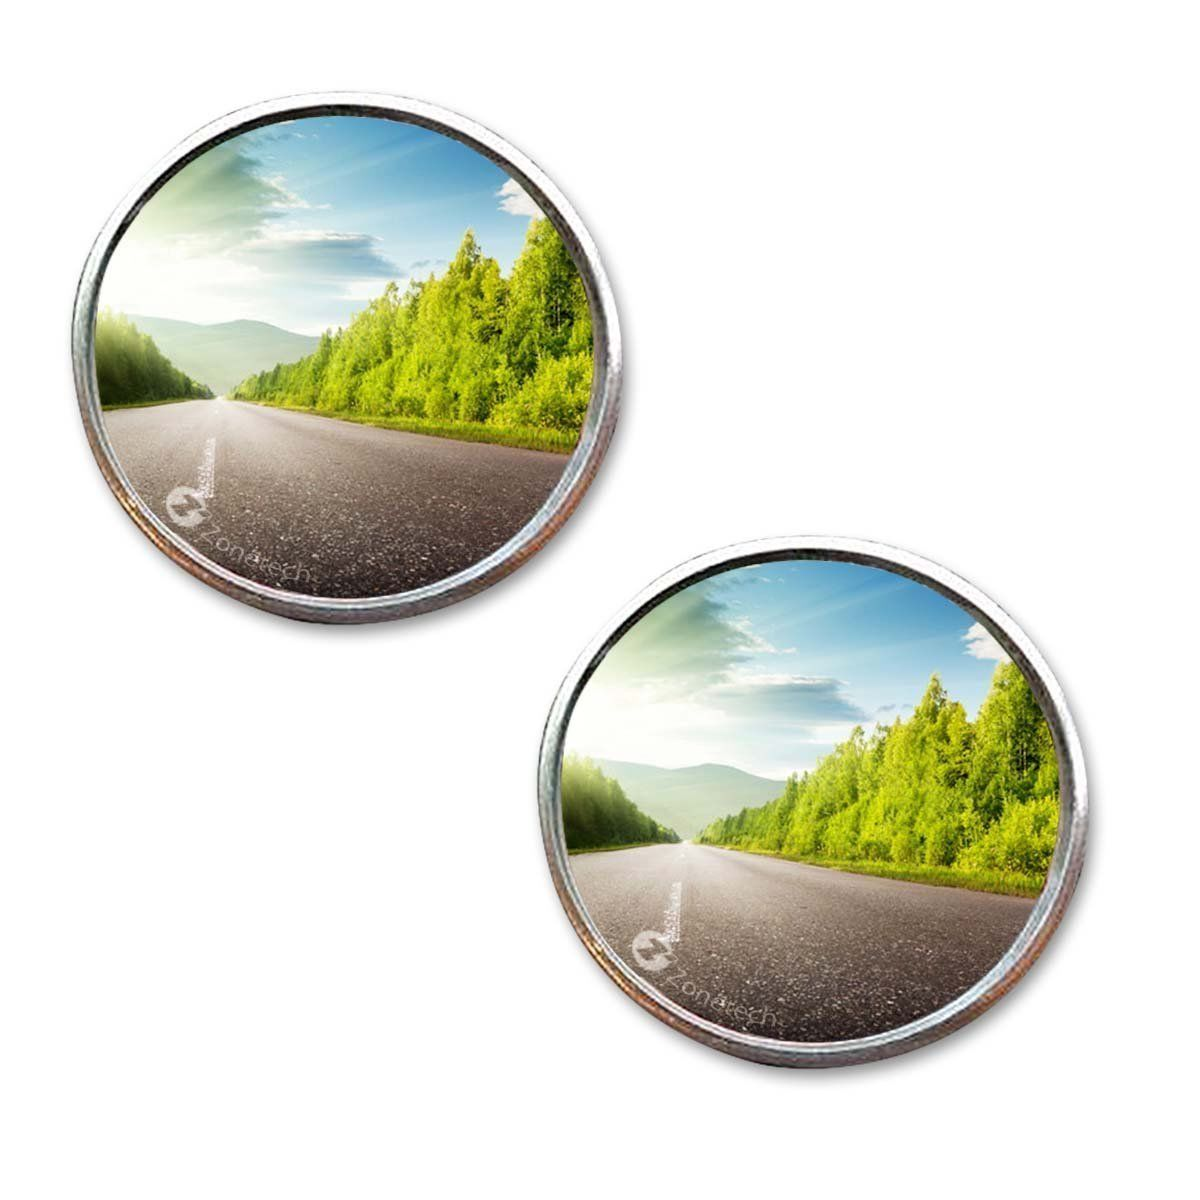 Zone Tech 2  Round Rear-view Blind Spot Convex Wide Angle Mirrors